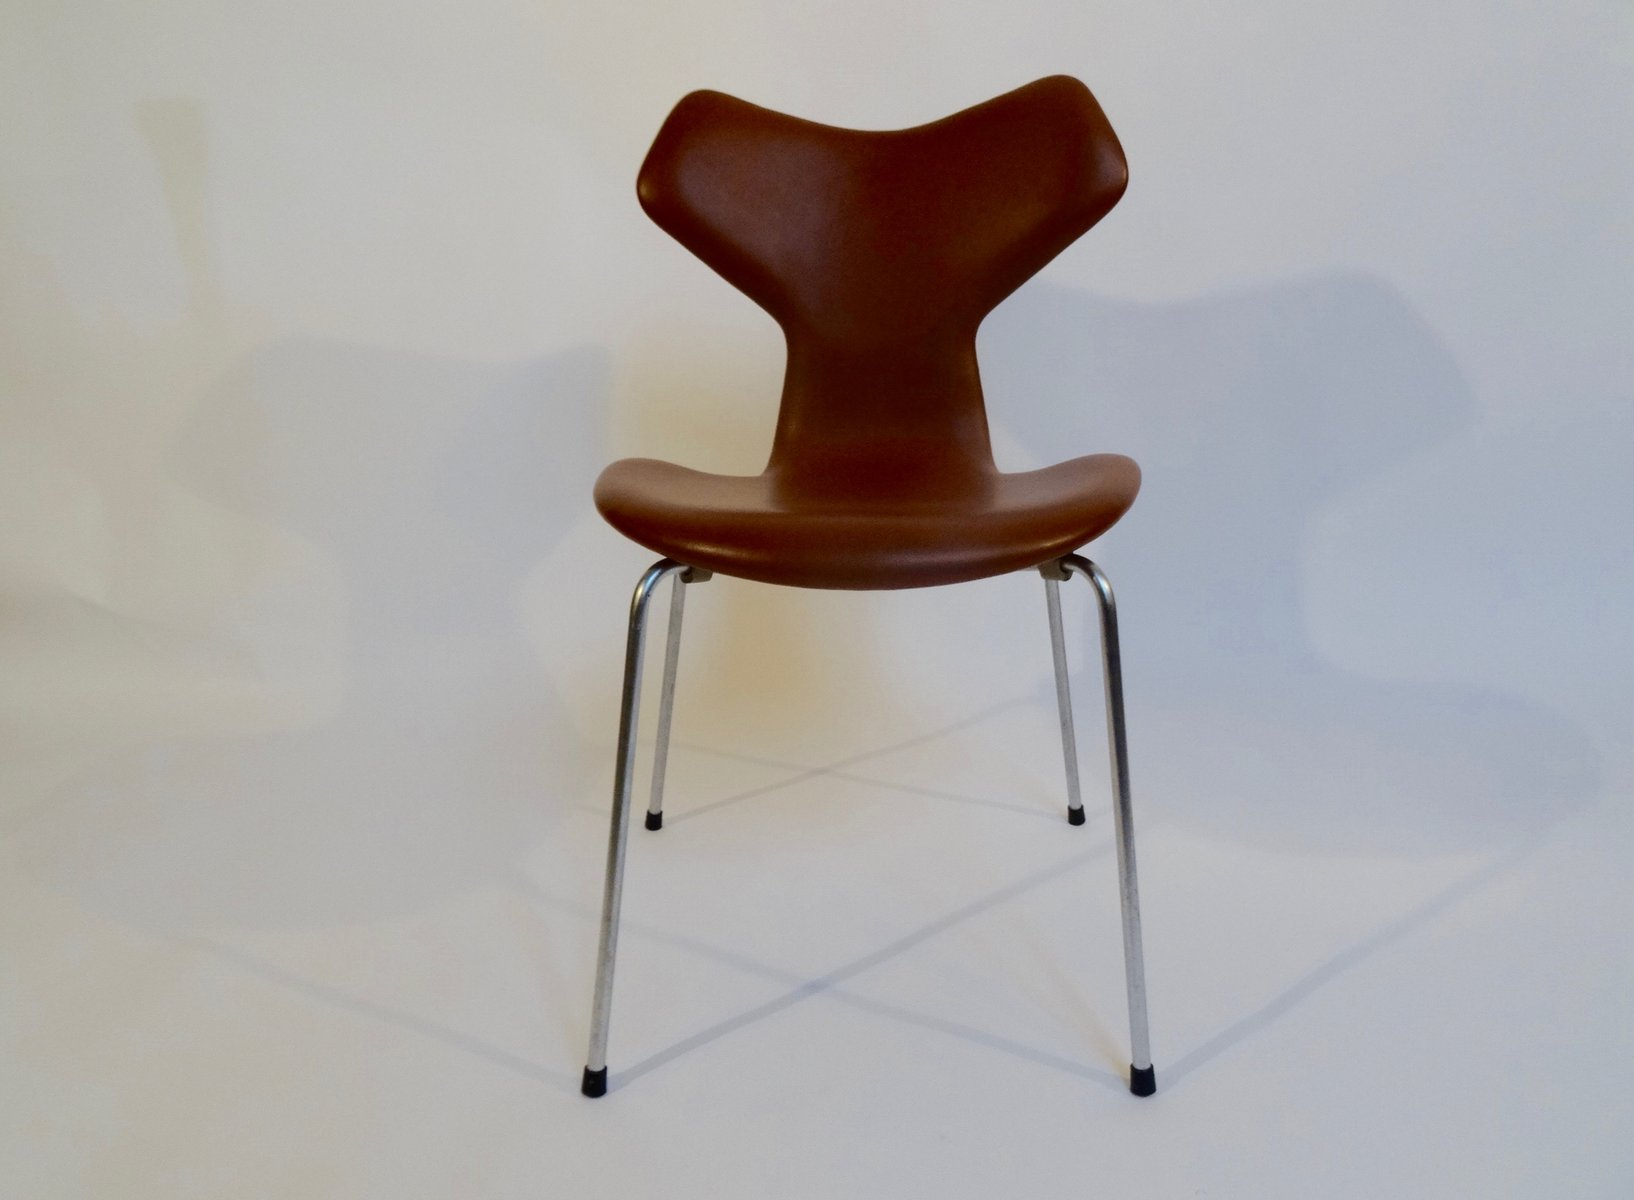 Grand prix chair by arne jacobsen for fritz hansen 1964 for Chaise arne jacobsen